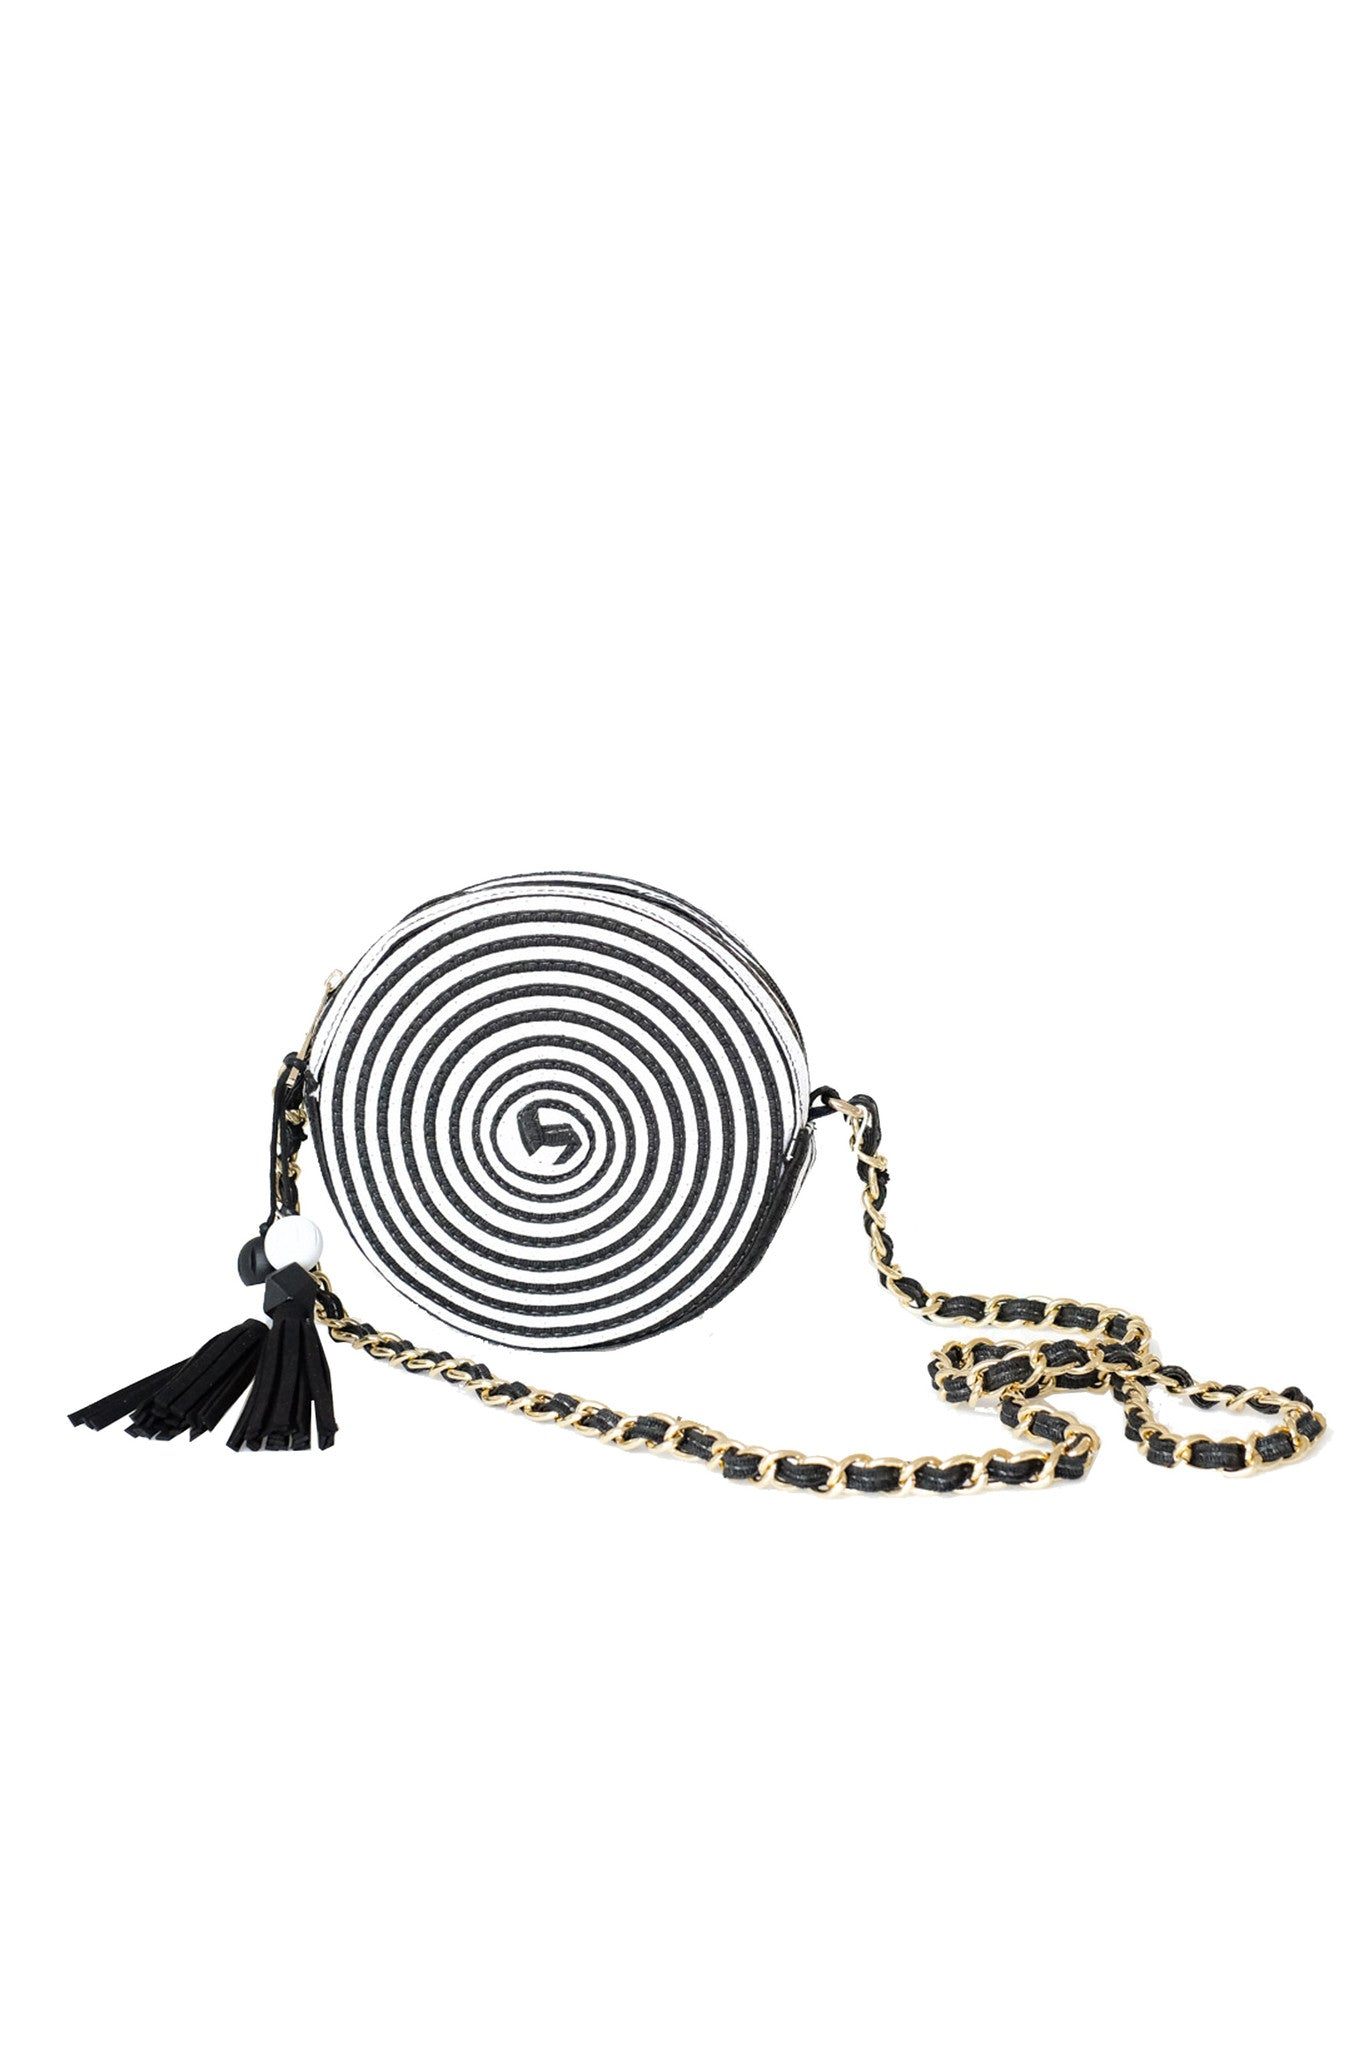 Black and White Stripped Cross-body Bag